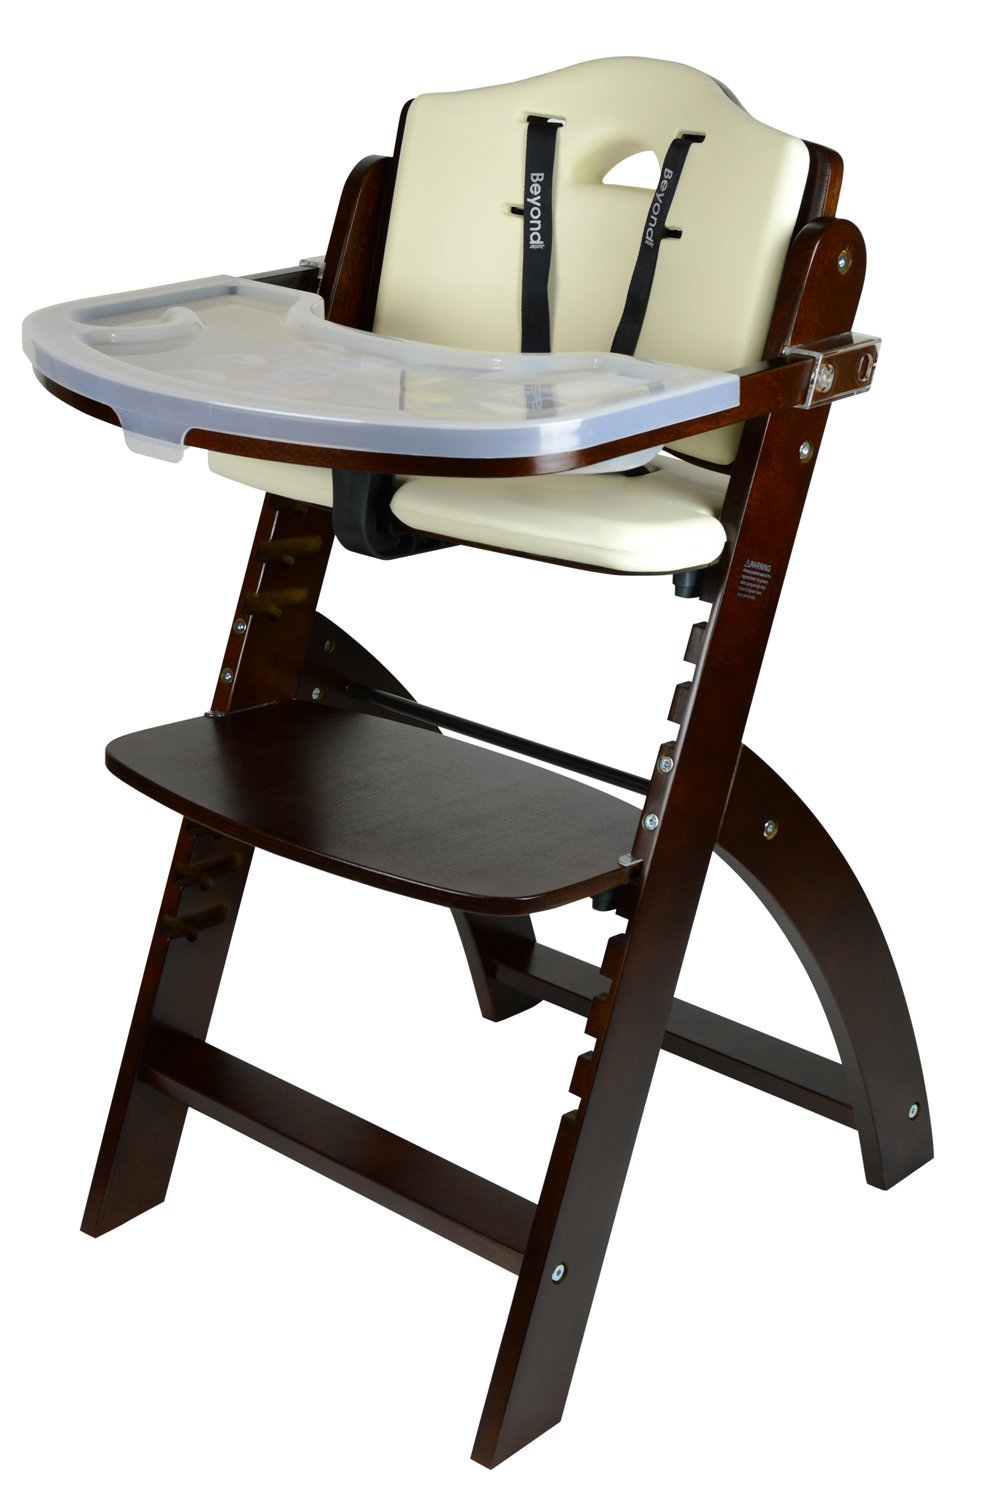 Fornel Heartwood Black Adjustable Wooden High Chair Baby Highchair Solution for Babies and Toddlers Dining Highchair from 24 Months